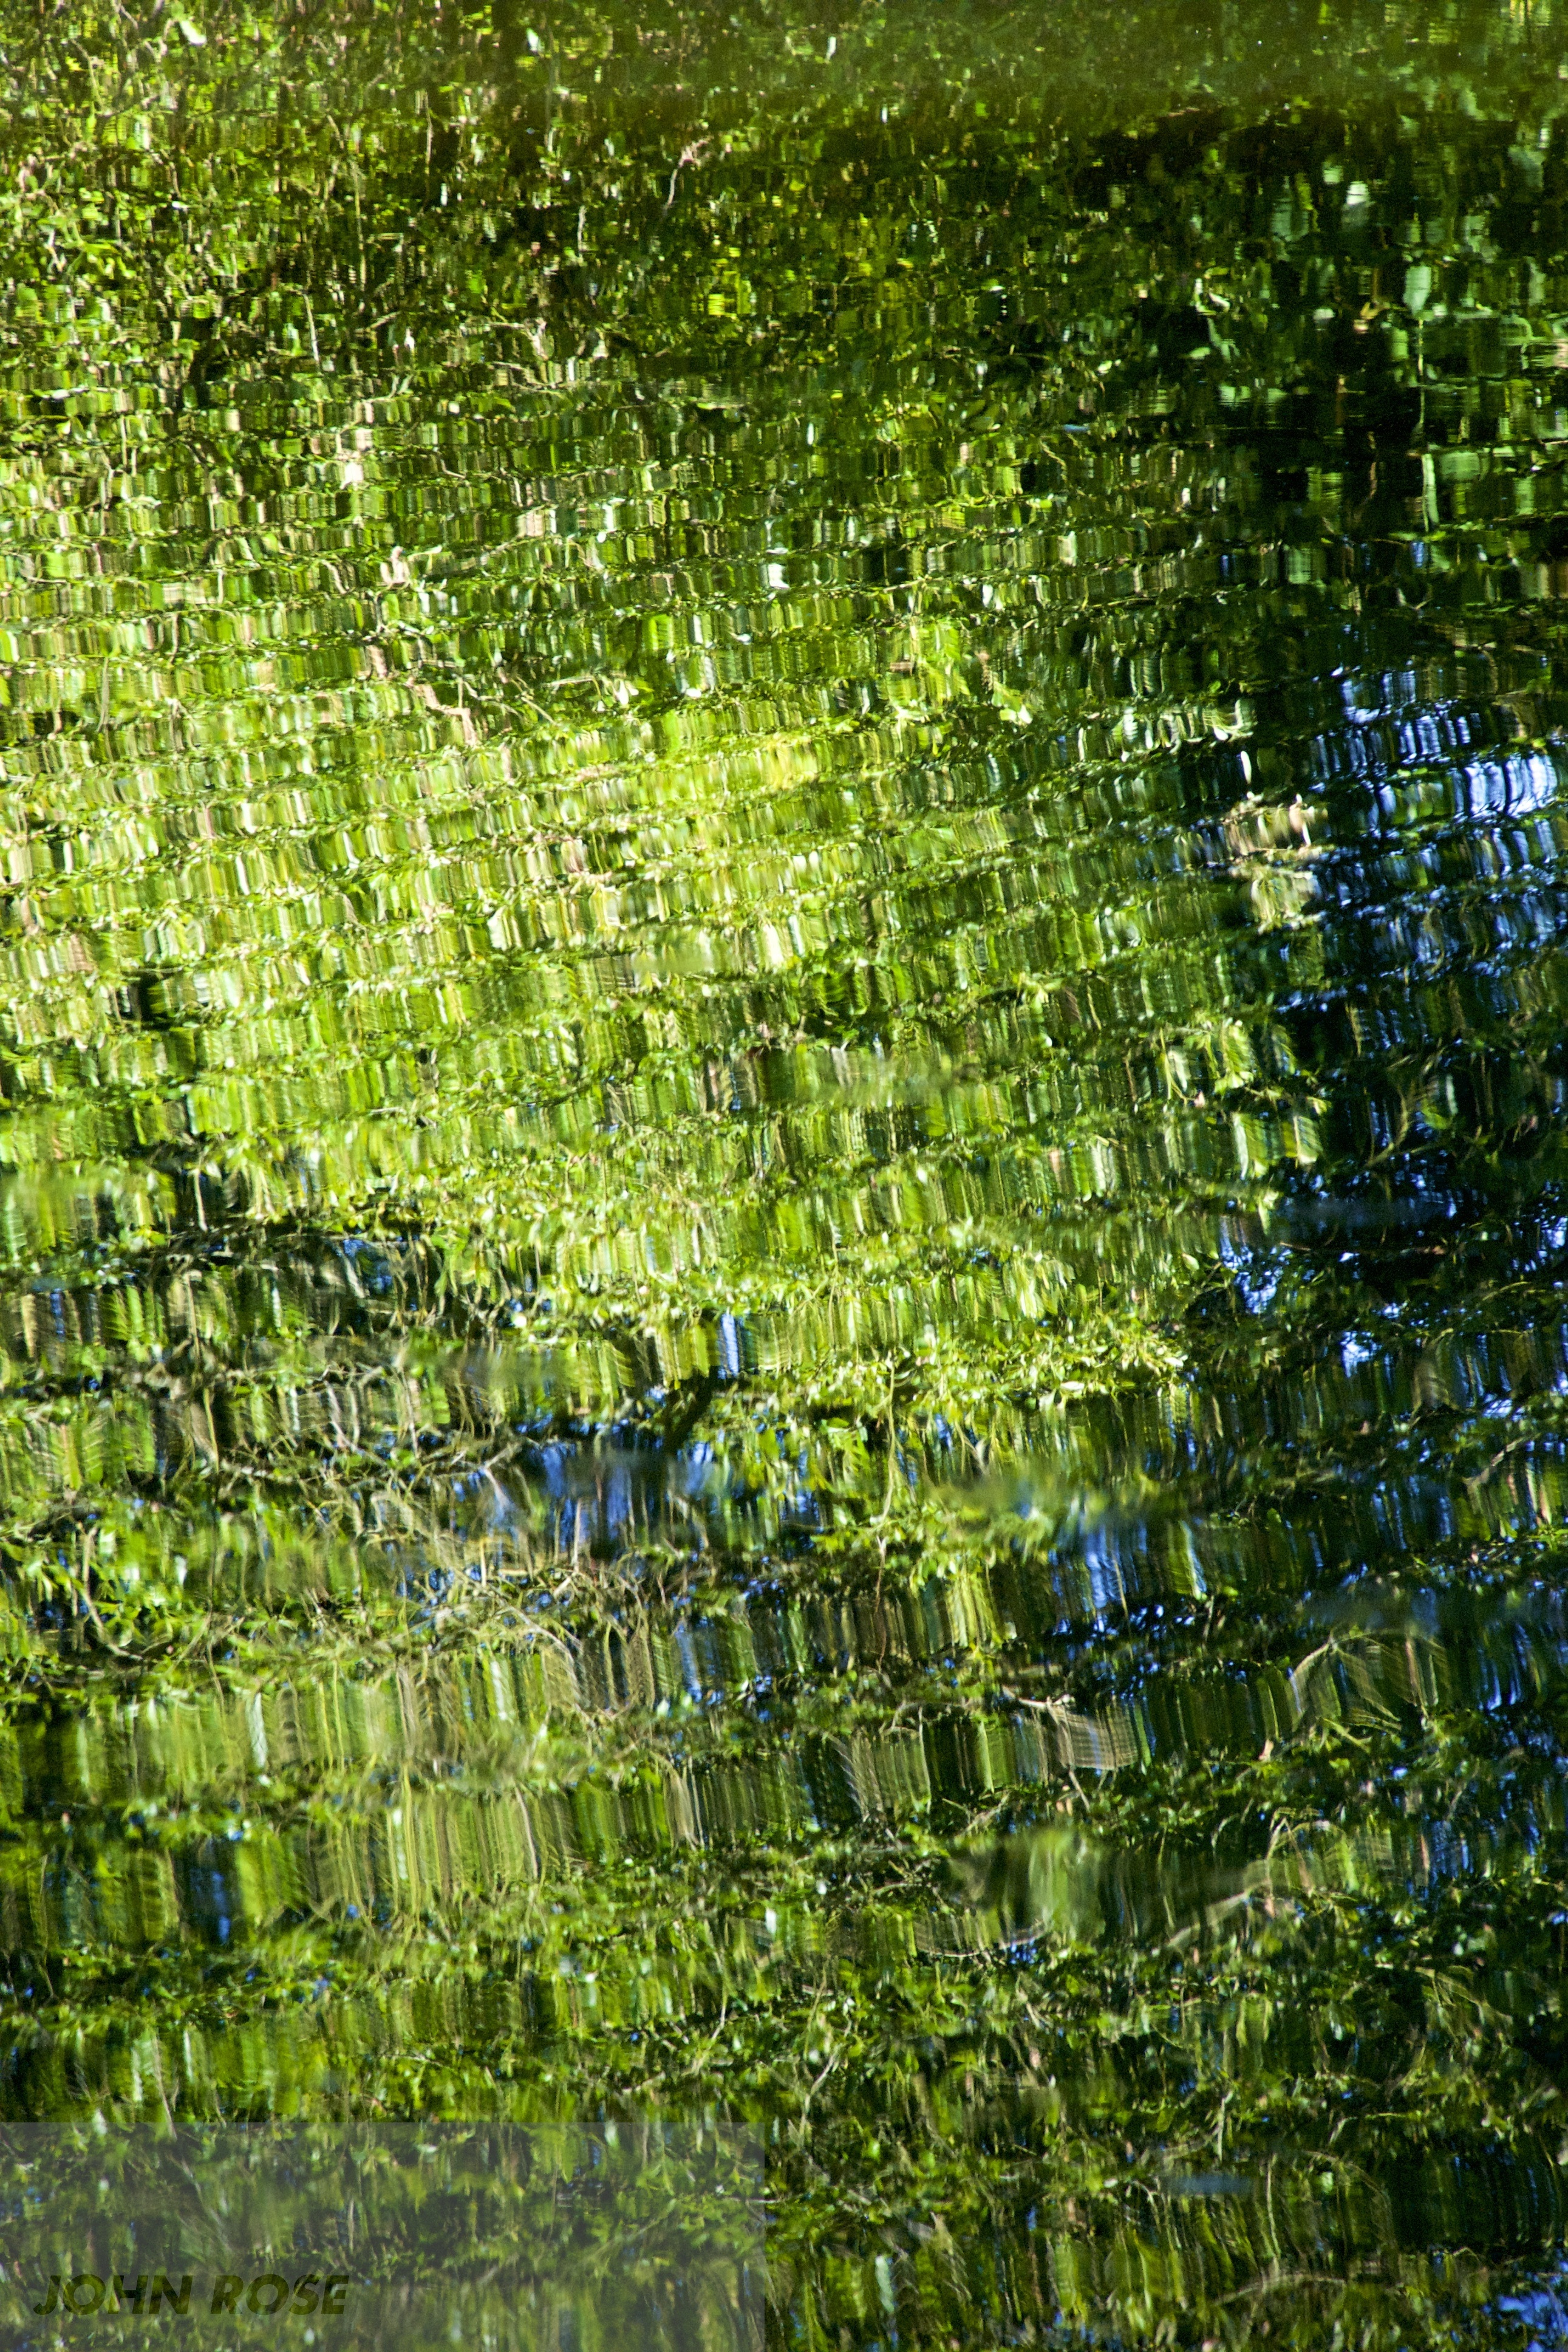 John Rose Photographic artwork of pattern in nature Summer warm fish sipping flies gentle alter sunlit tree